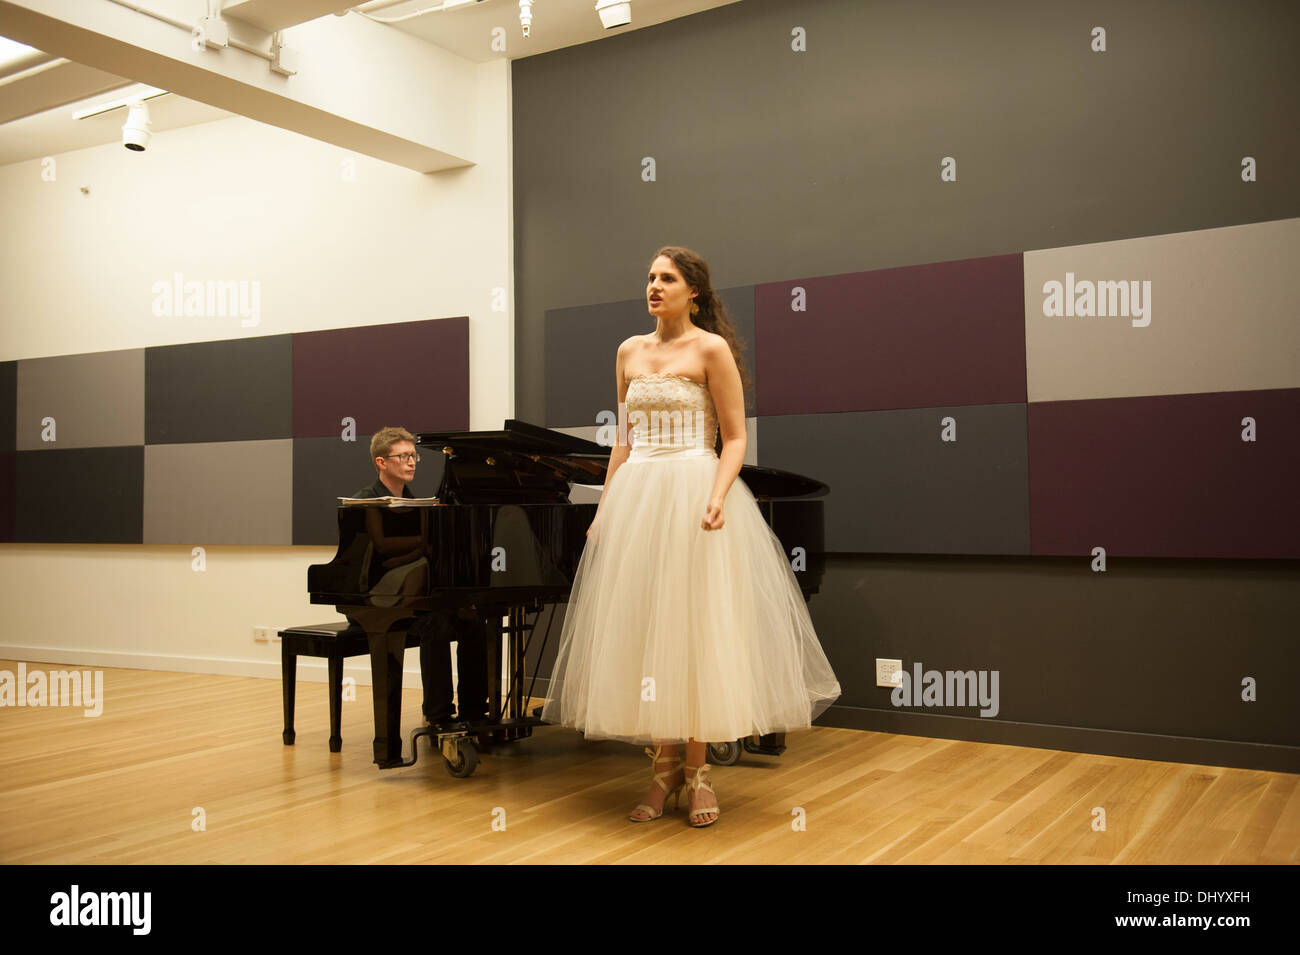 A student singing at a recital in a rehearsal room on Seventh Avenue in Manhattan. - Stock Image